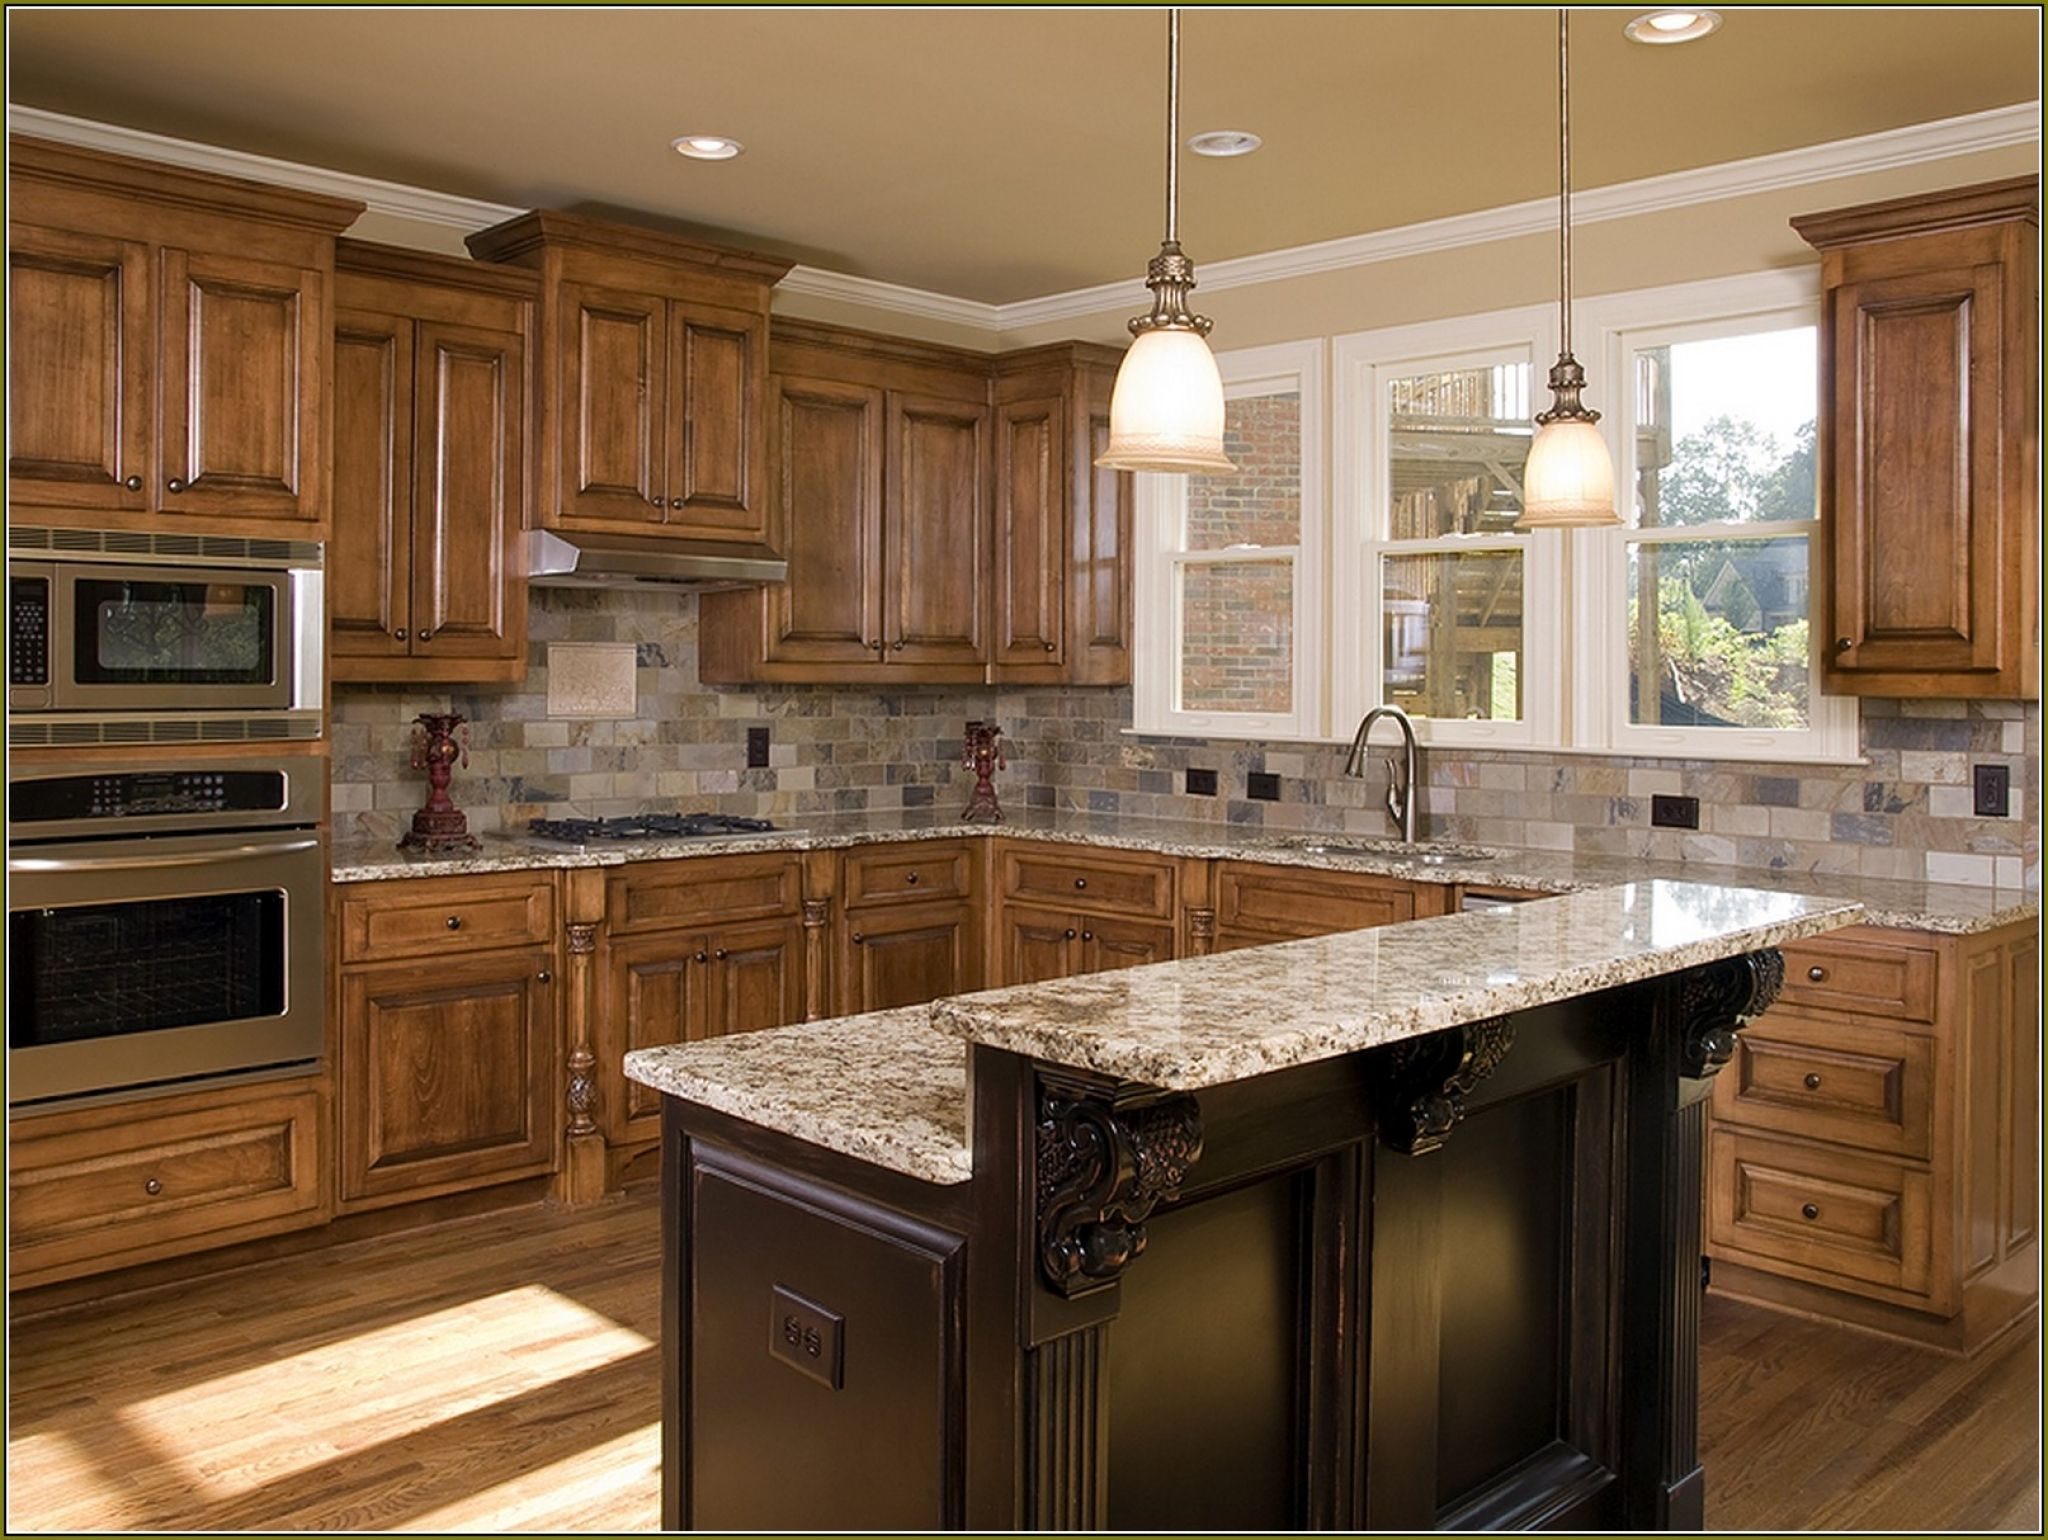 Menards Kitchen Cabinet Hardware  Kitchen Counter Organization Delectable Kitchen Cabinets Menards Design Decoration